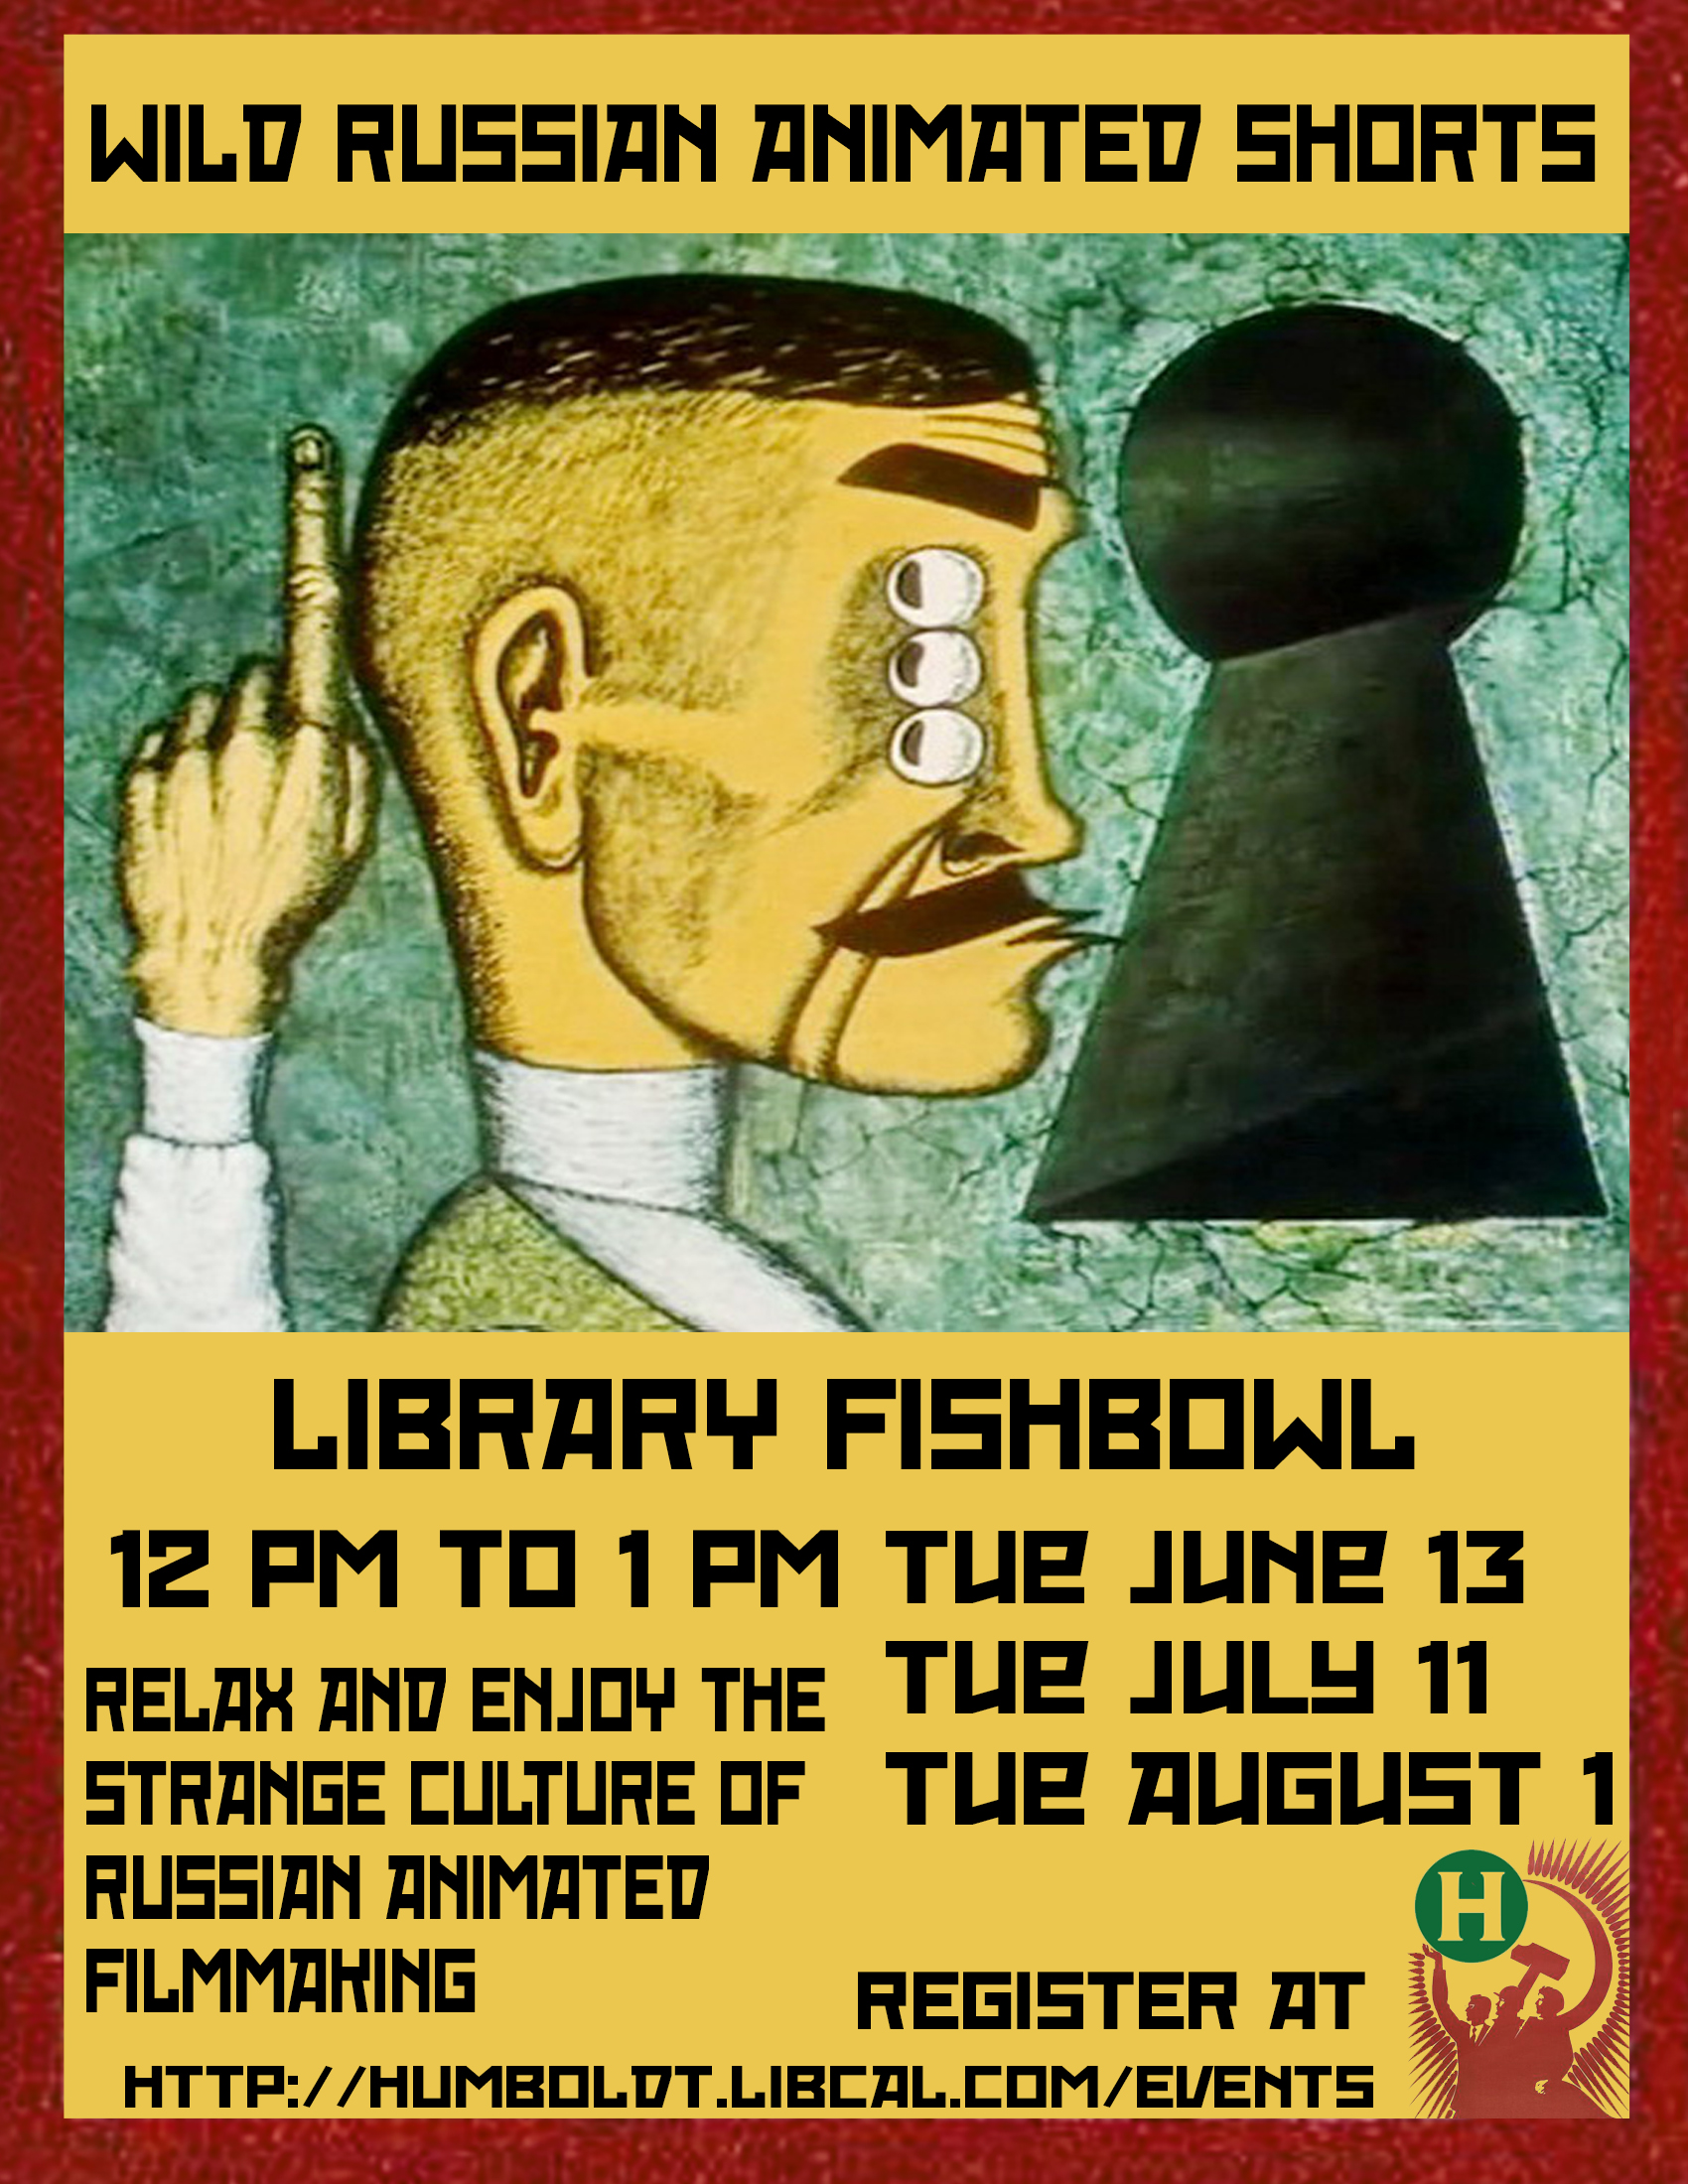 Film Screening: Wild Russian Animated Shorts